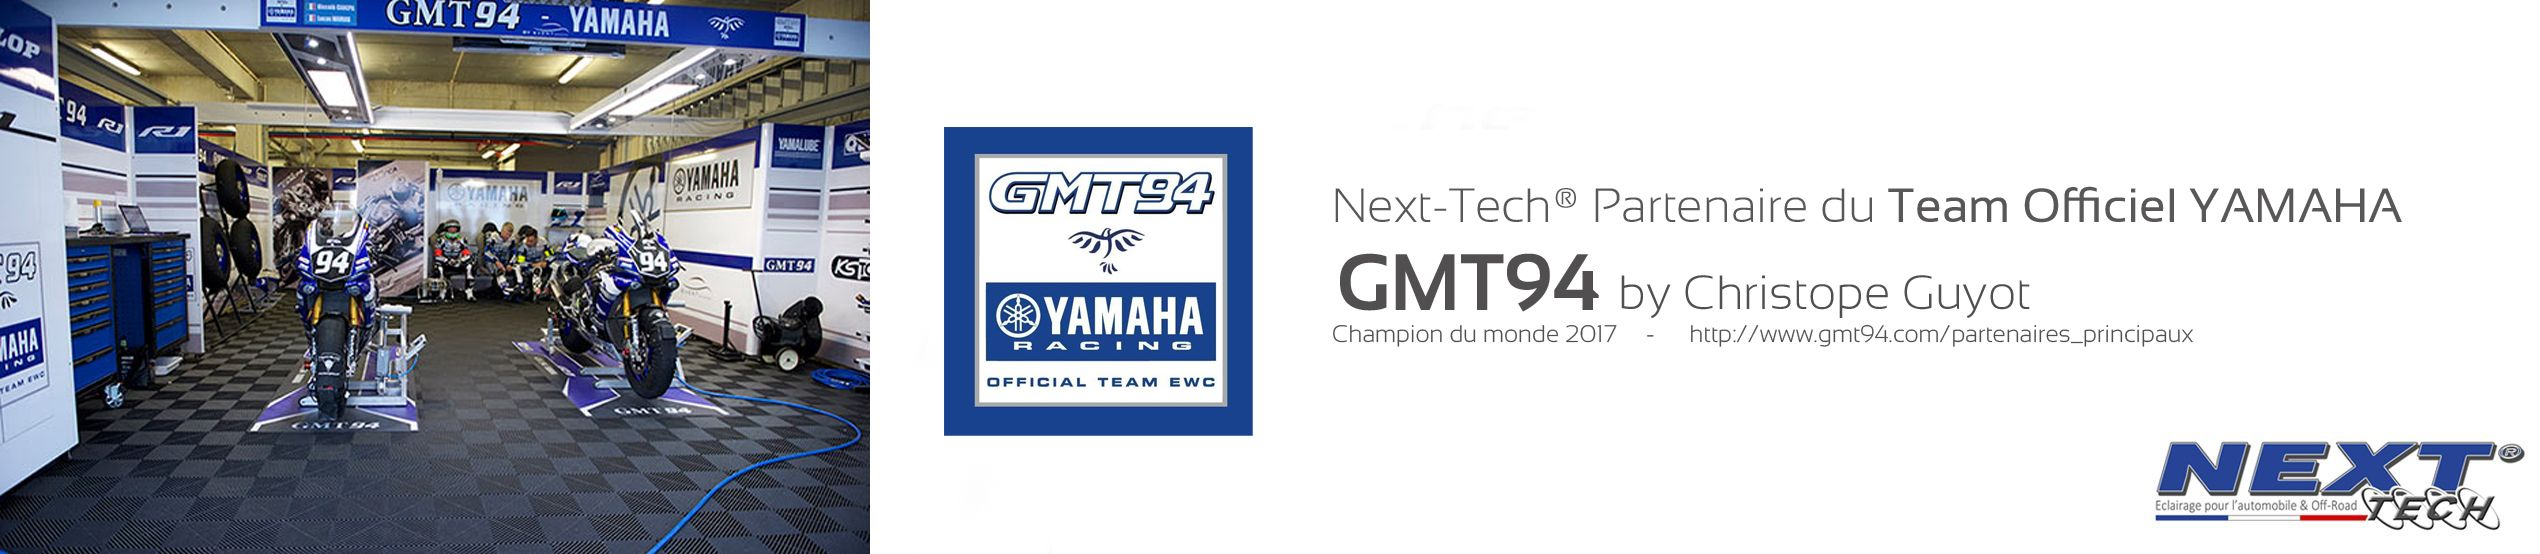 Next-Tech® partenaire officiel du GMT94 - World Champion EWC Team